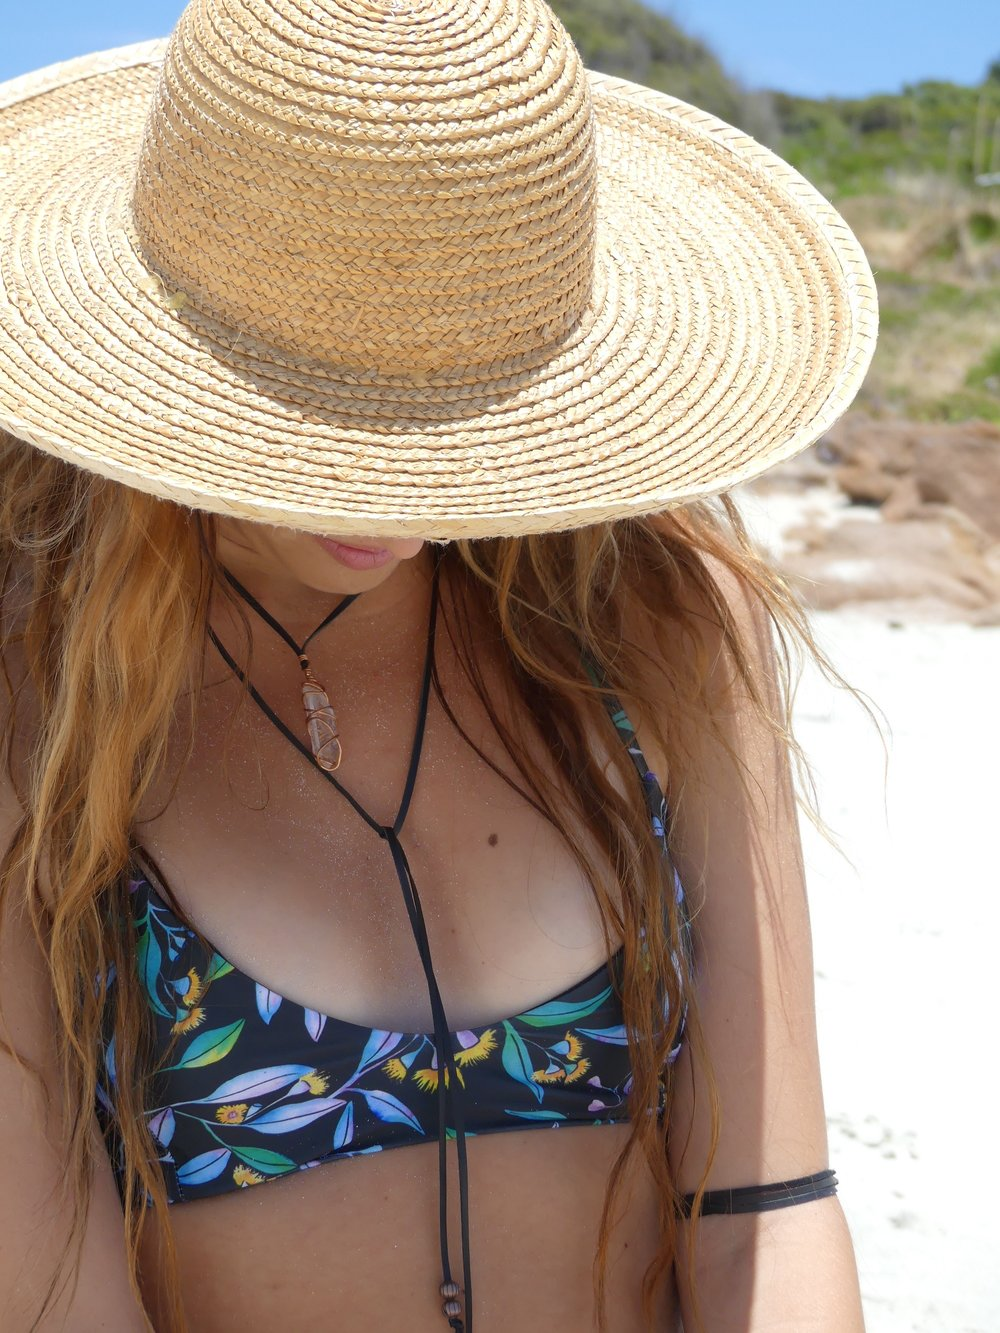 she-lives-free-blog-20-two-in-the-sun.jpg